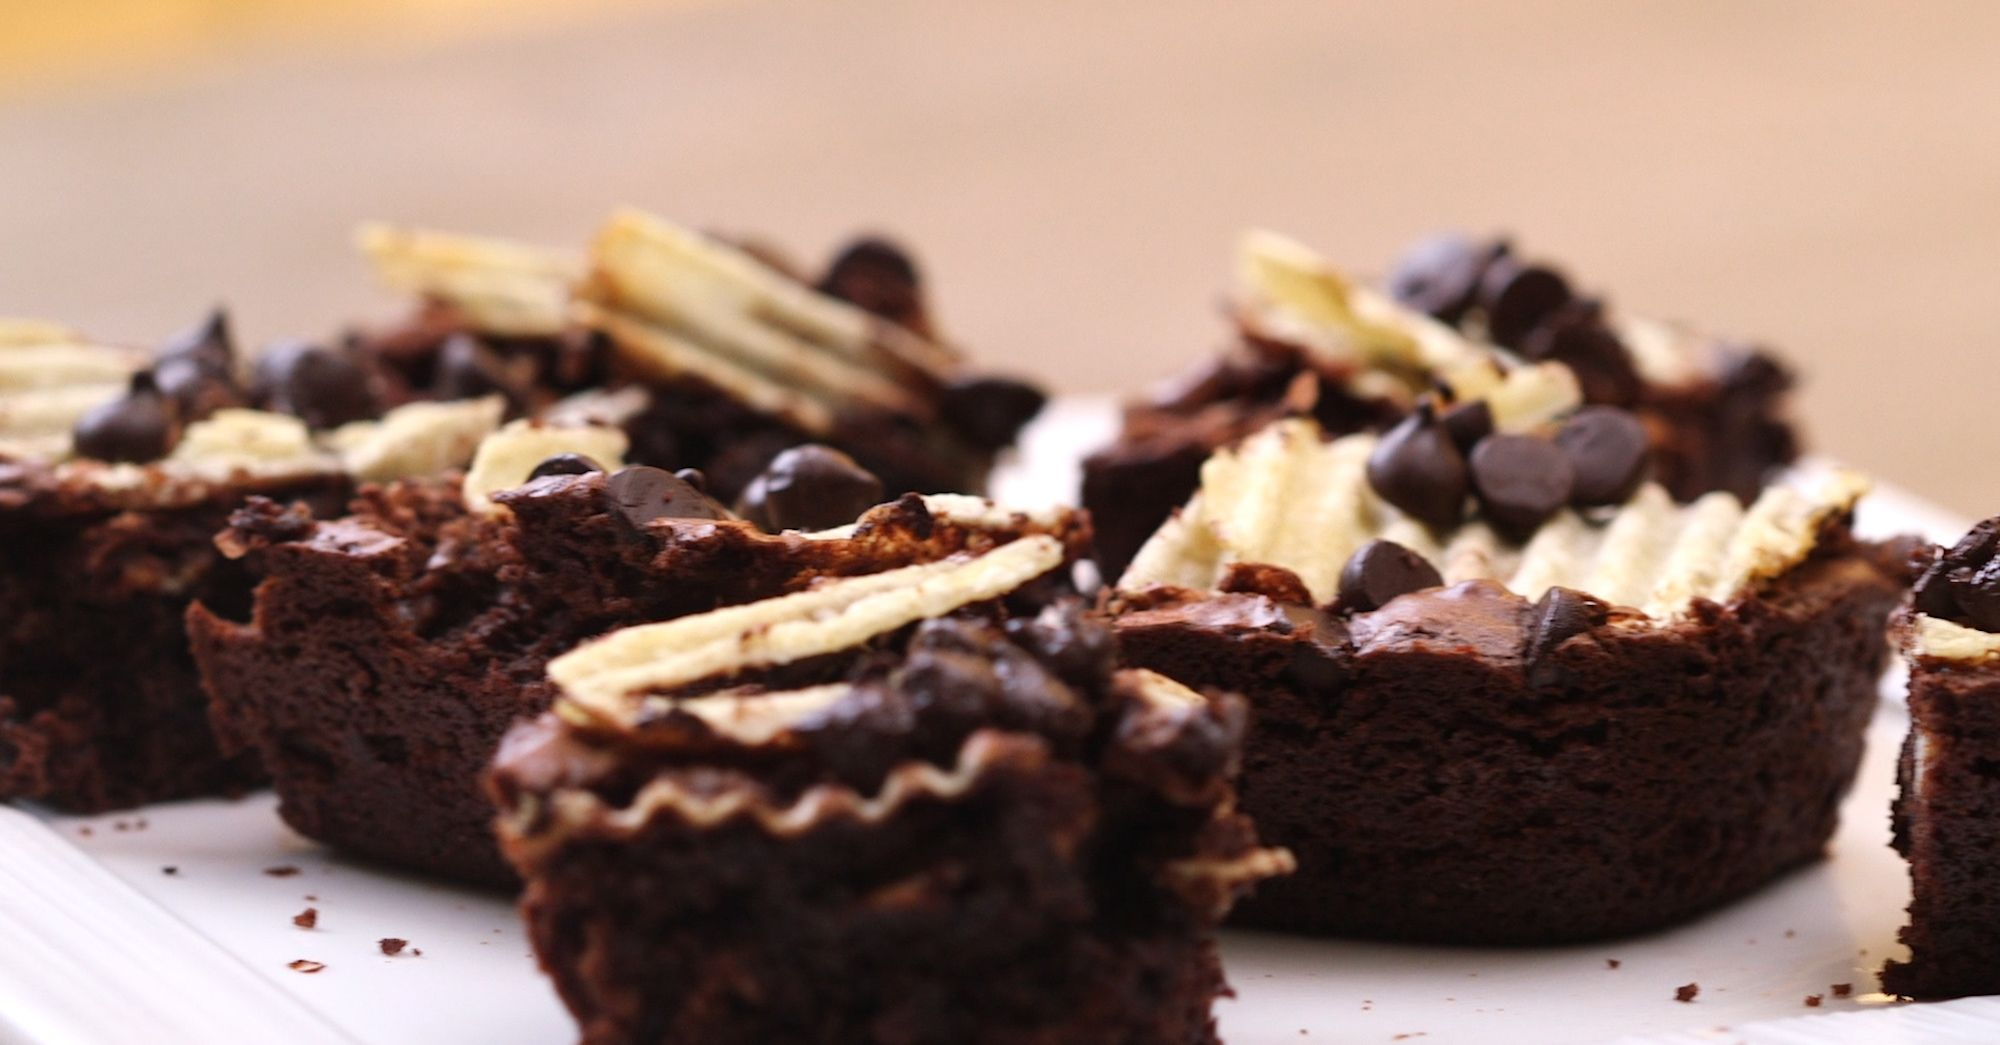 Lays Ruffled Potato Chip Brownies Are the Perfect Sweet and Salty Combination